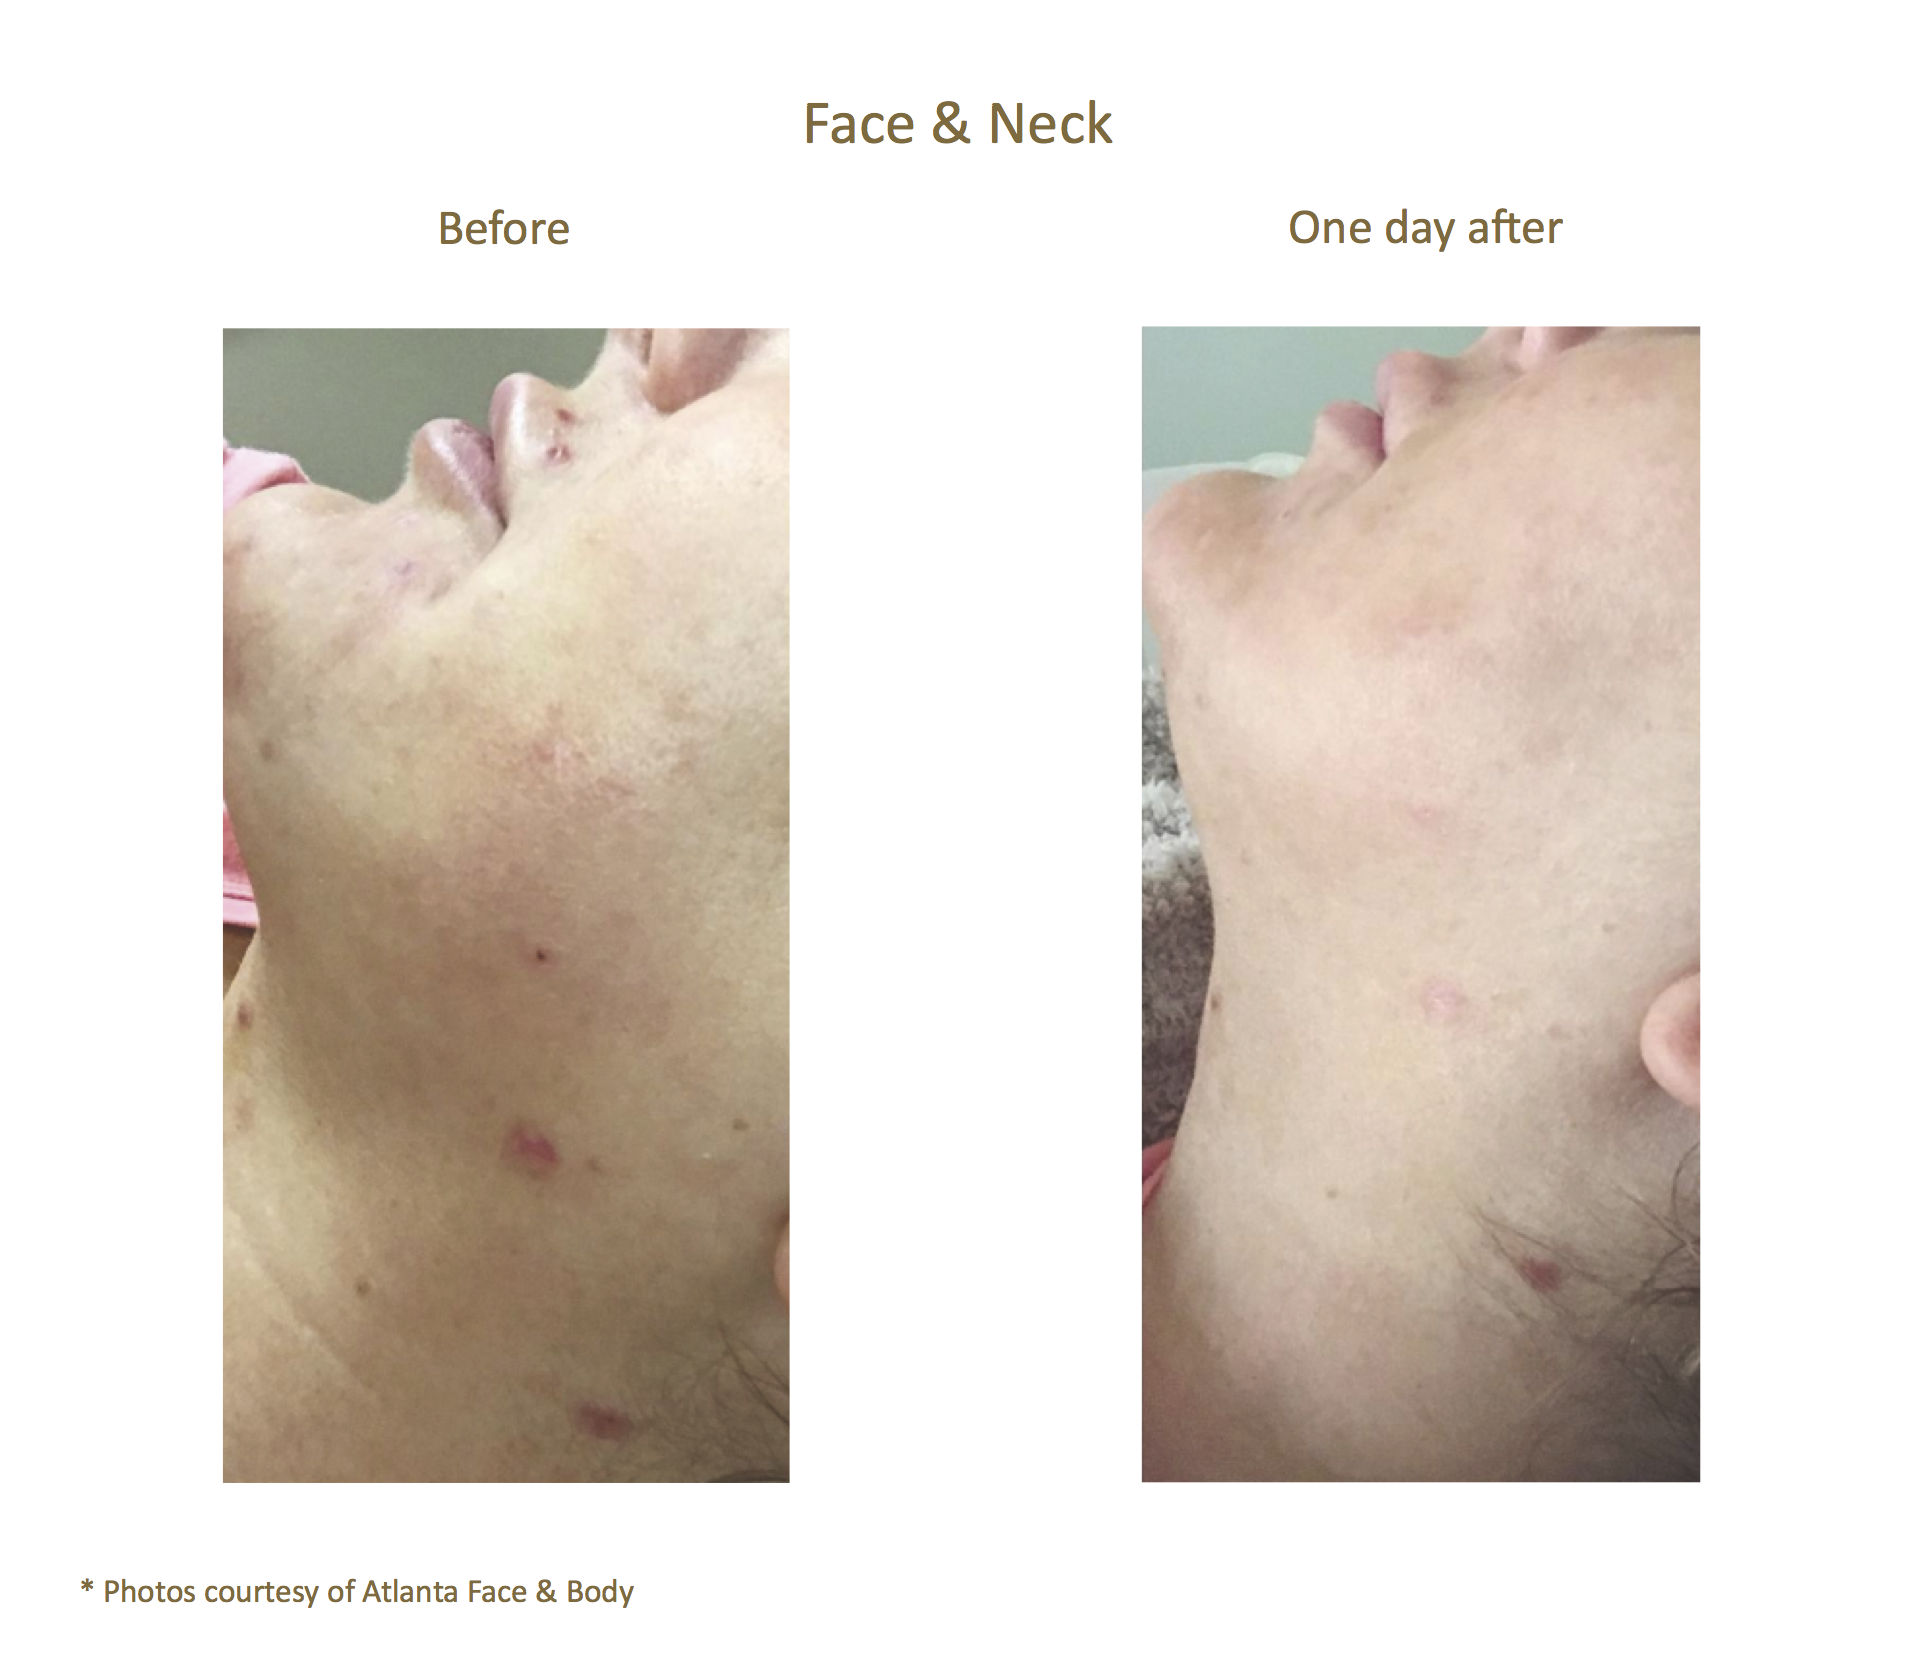 Before & After_Atlanta Face & Body_Acne